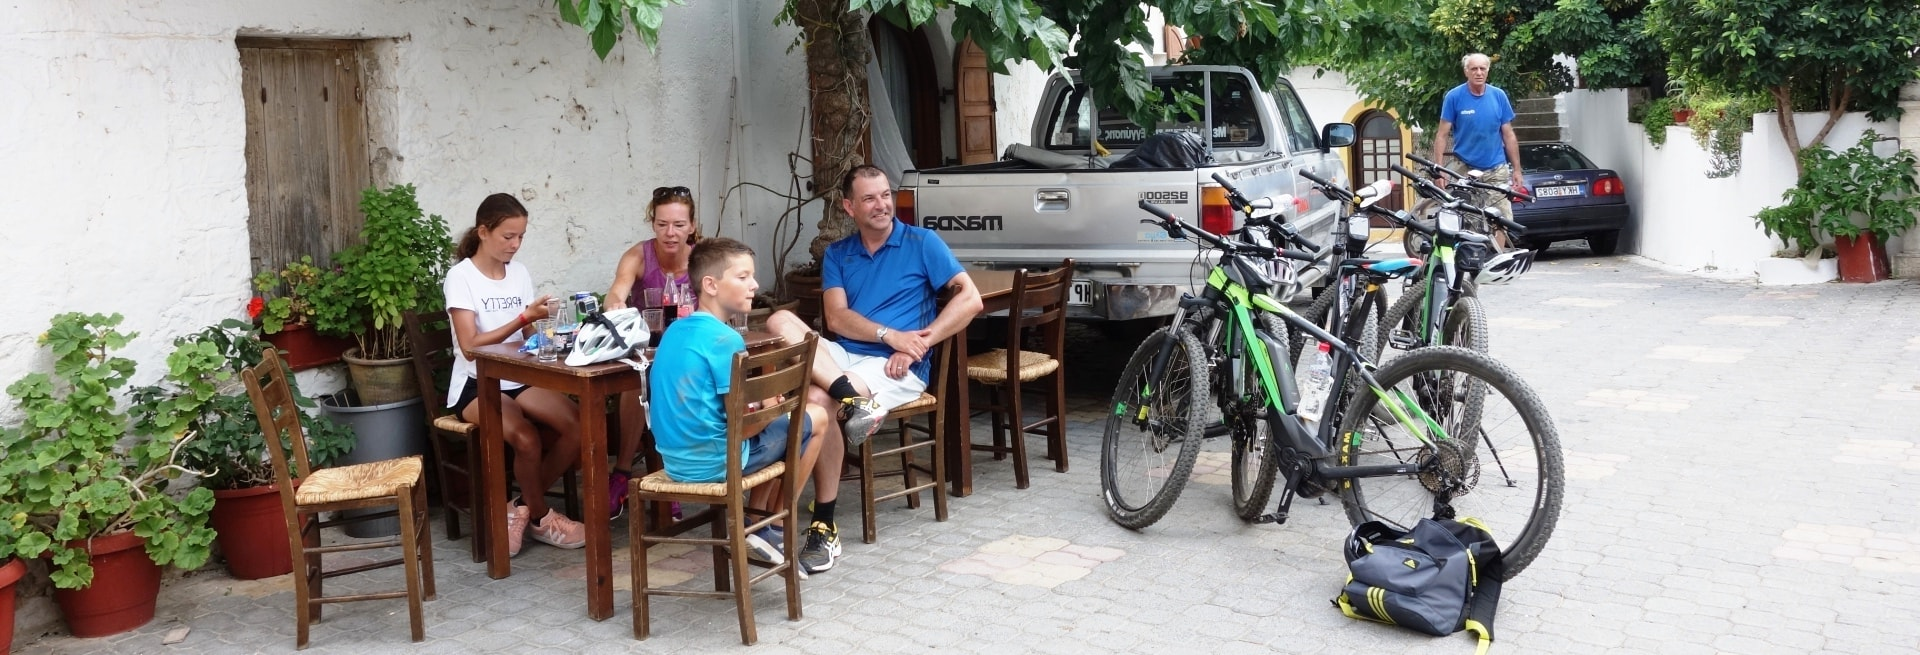 coffee stop ebike tour Crete small villages and aposelemis canyon